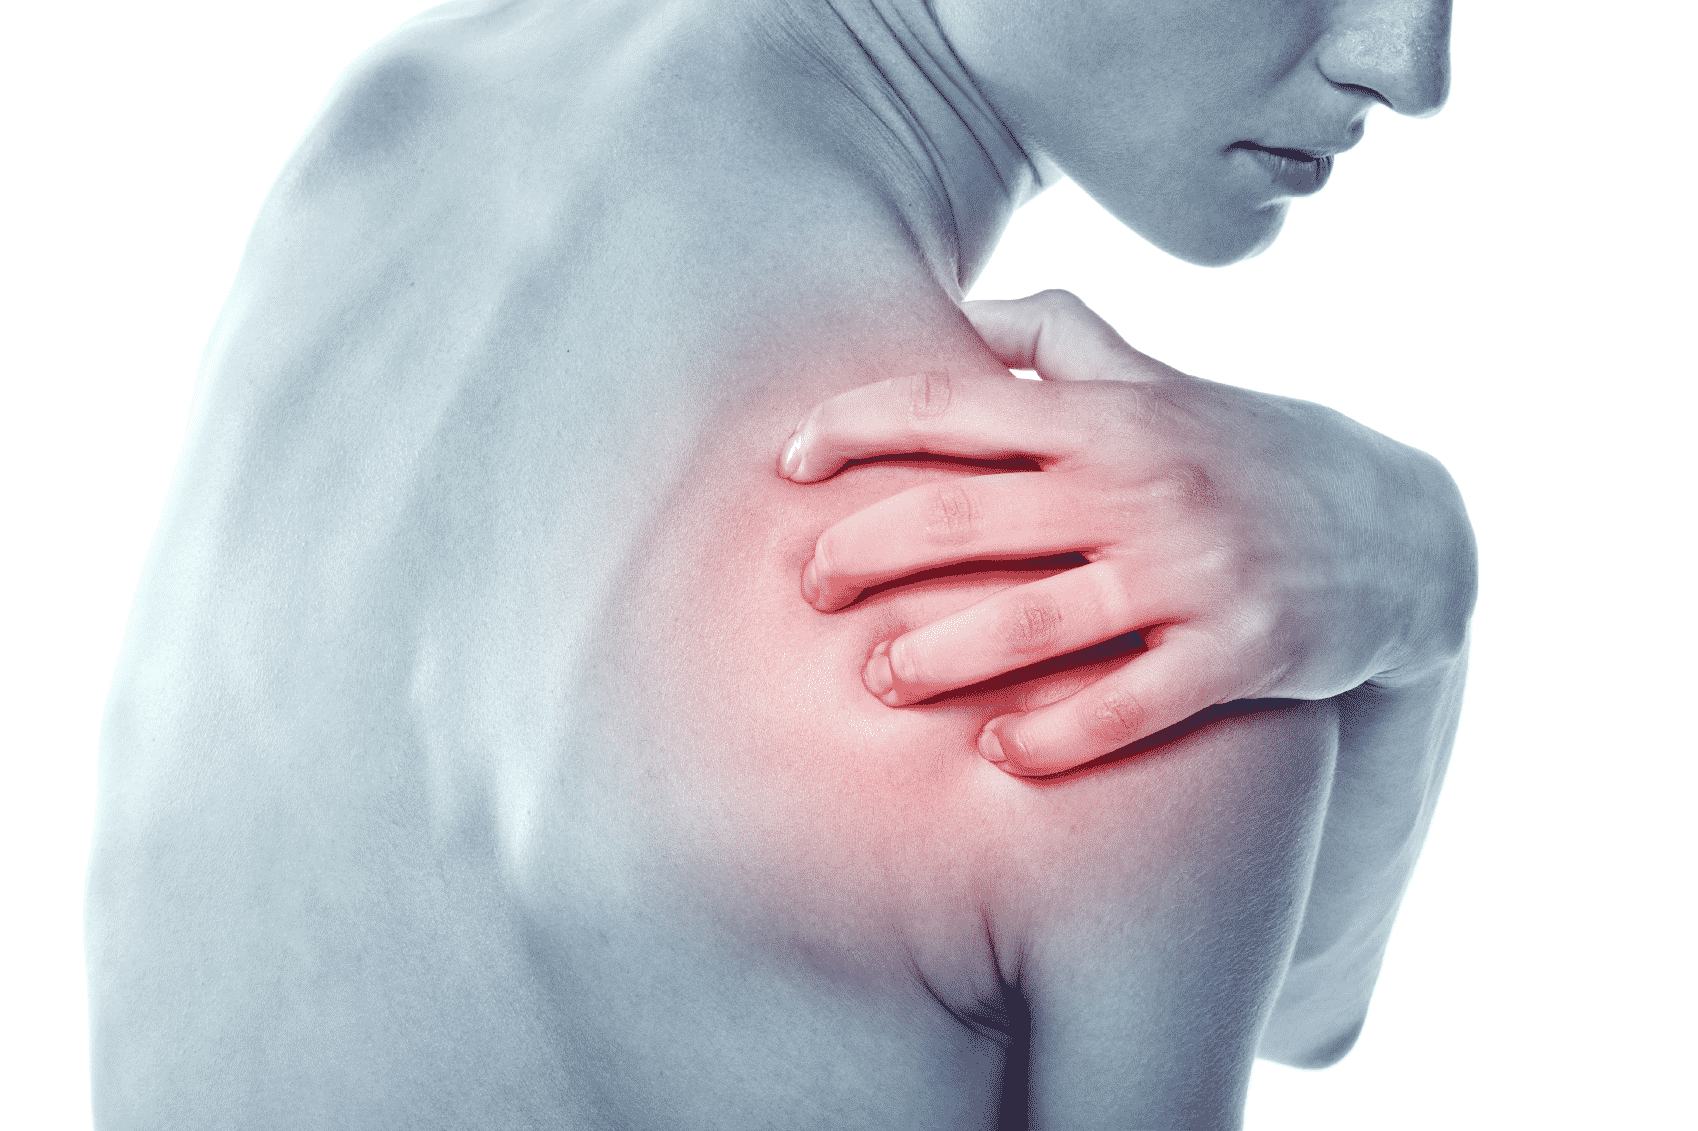 5 Questions To Ask About Dislocated Shoulder